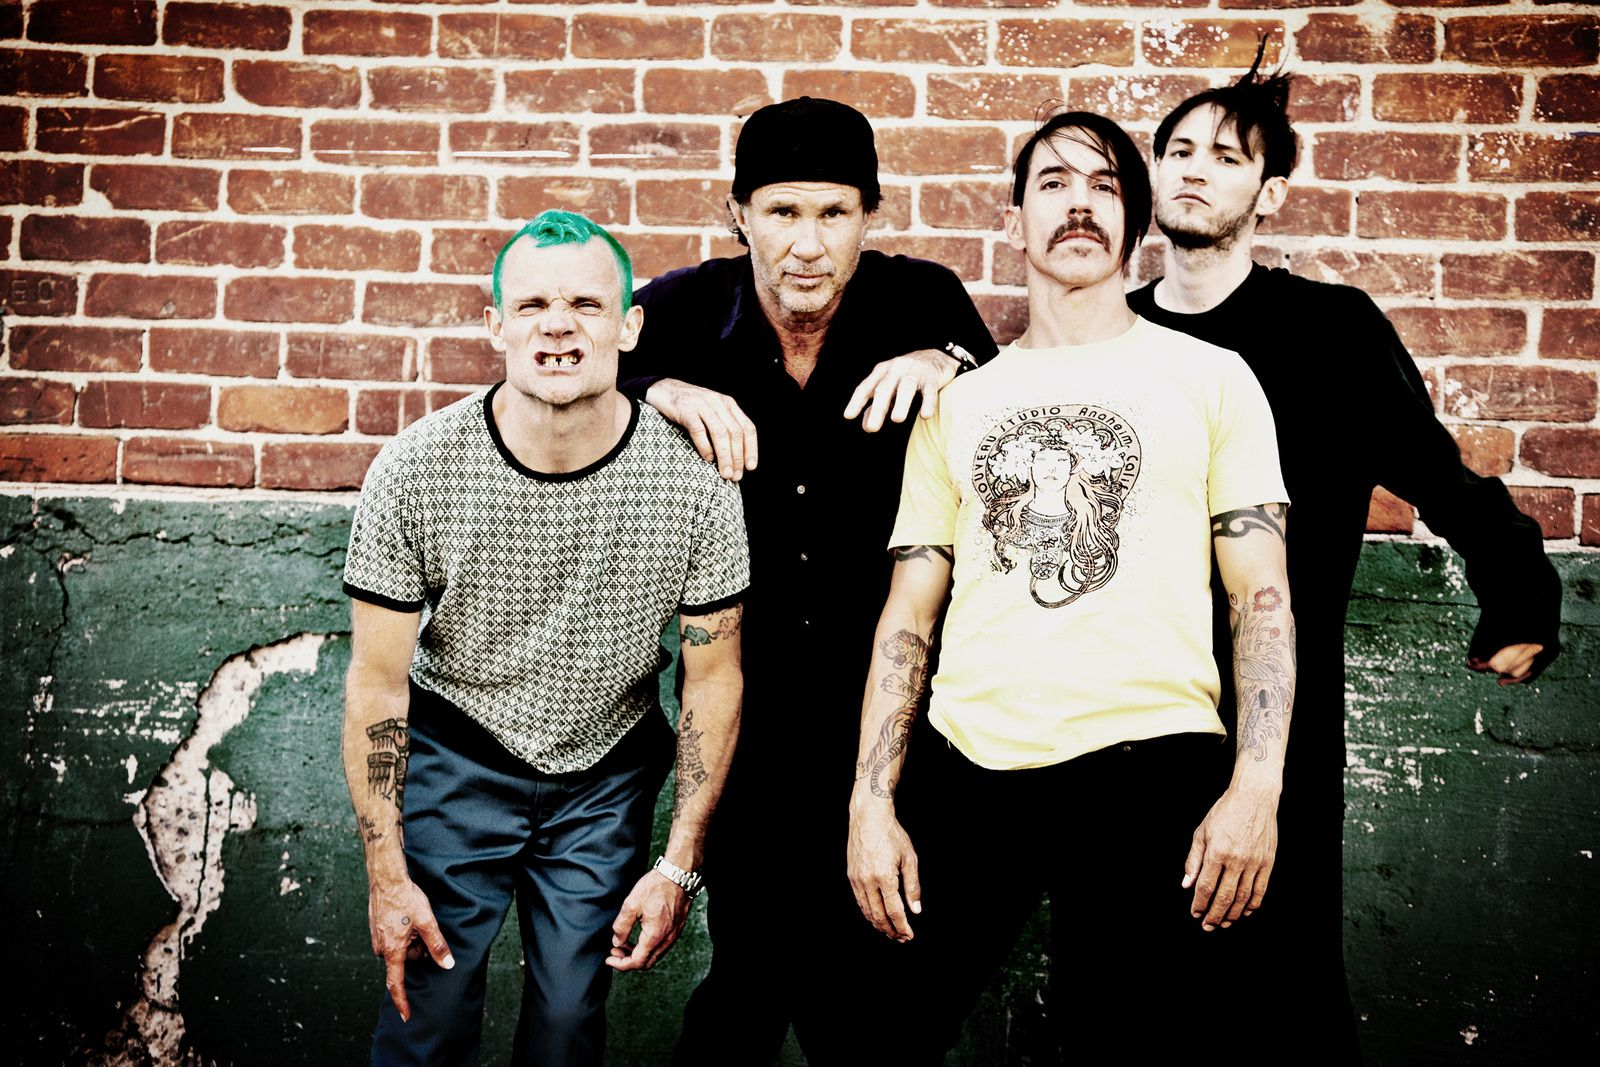 Concert entier des RED HOT CHILI PEPPERS au Rock am Ring 2016 HD